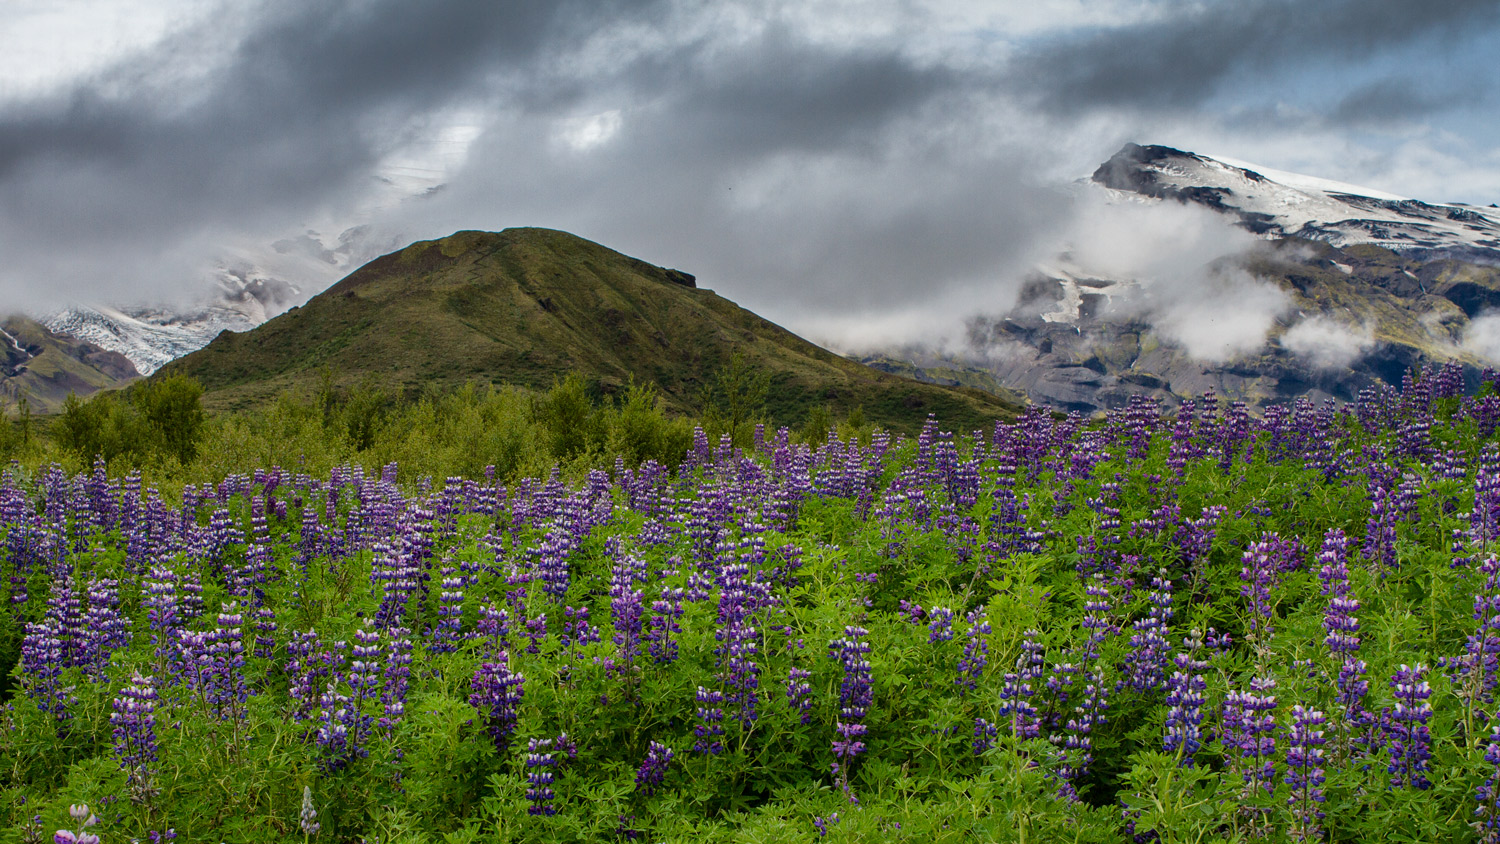 mountain landscape photography foreground flowers with mountains in the background